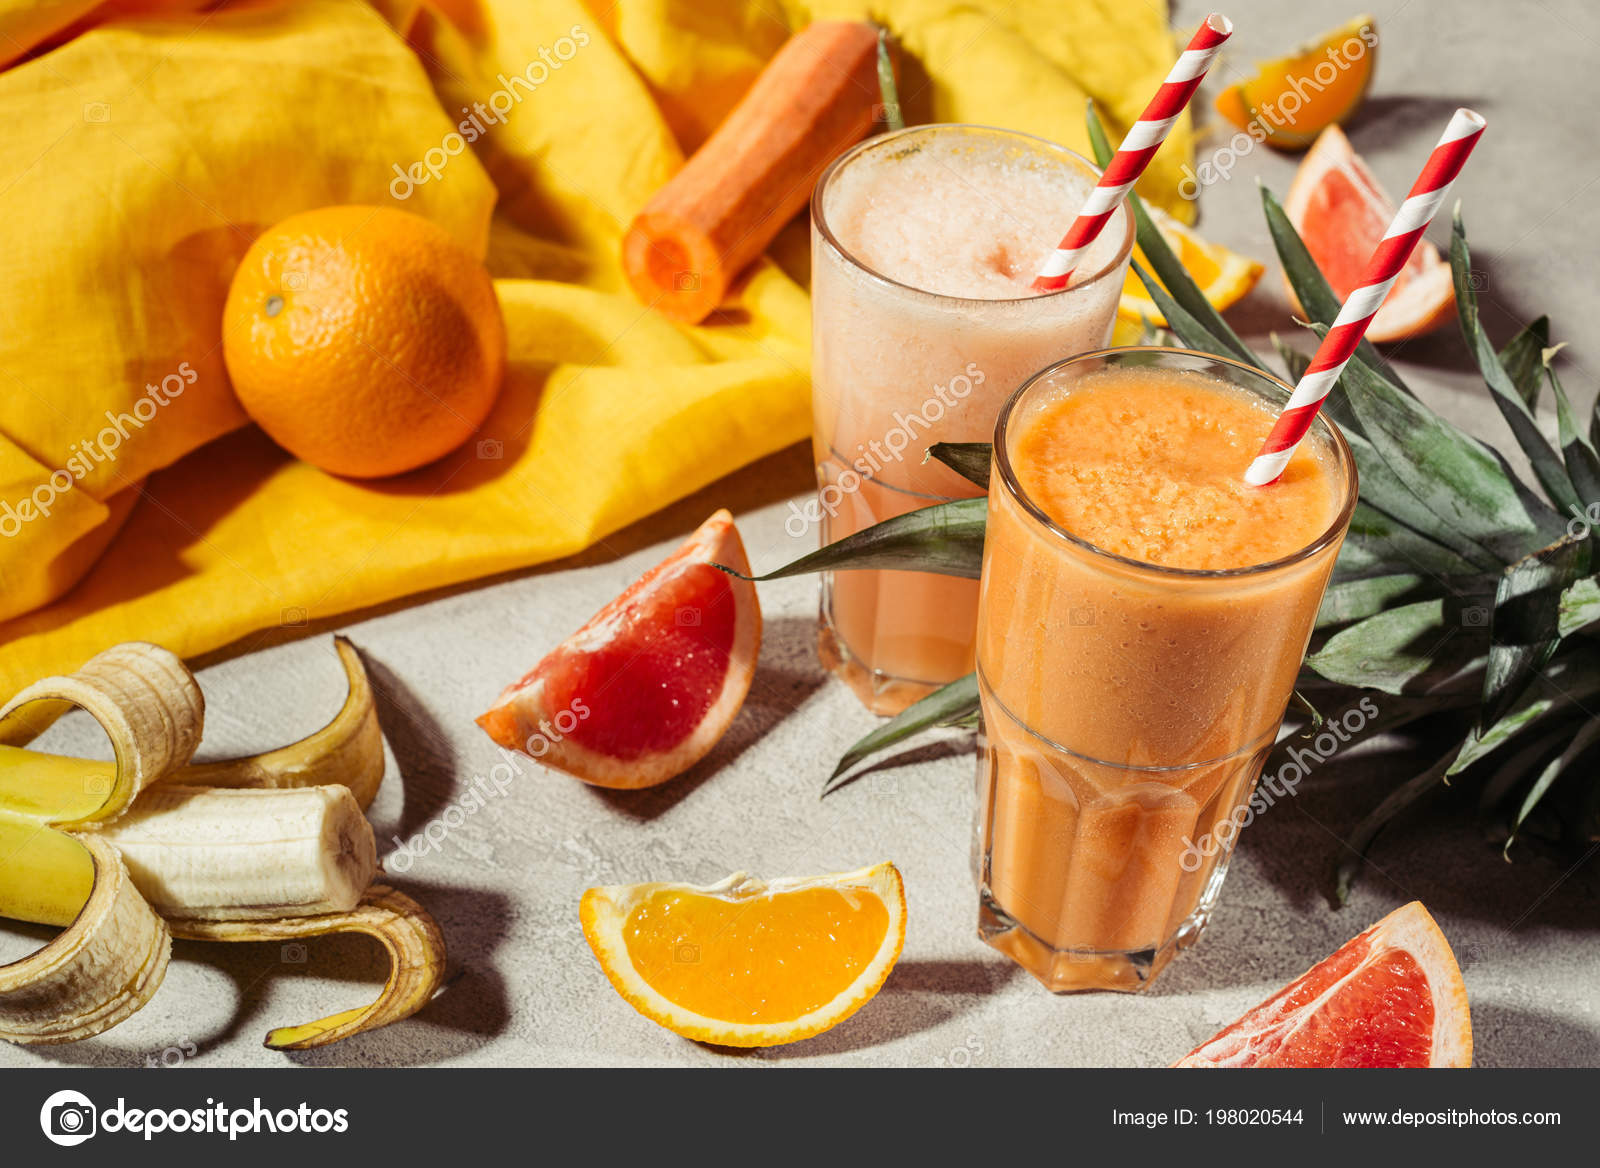 Glasses Tropical Fruits Juice Fruit Pieces Grey Table Stock Photo Image By Edzbarzhyvetsky 198020544